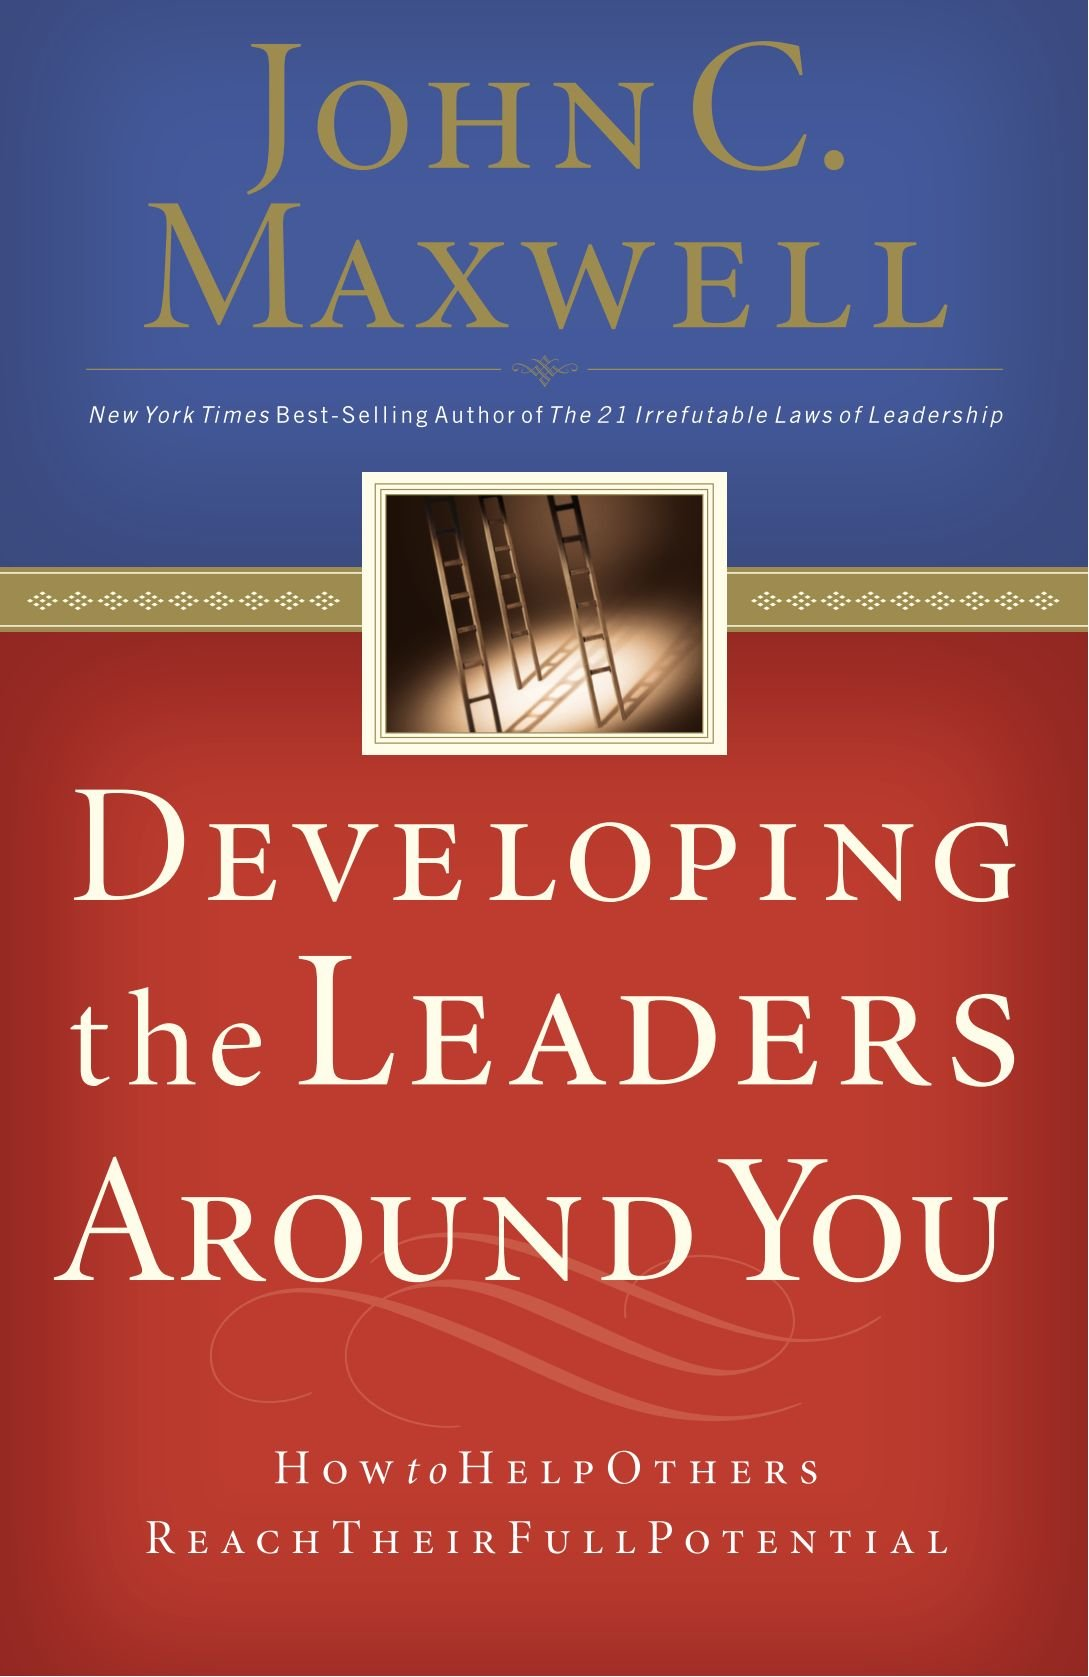 Amazon.com: Developing the Leaders Around You (9780785281115 ...